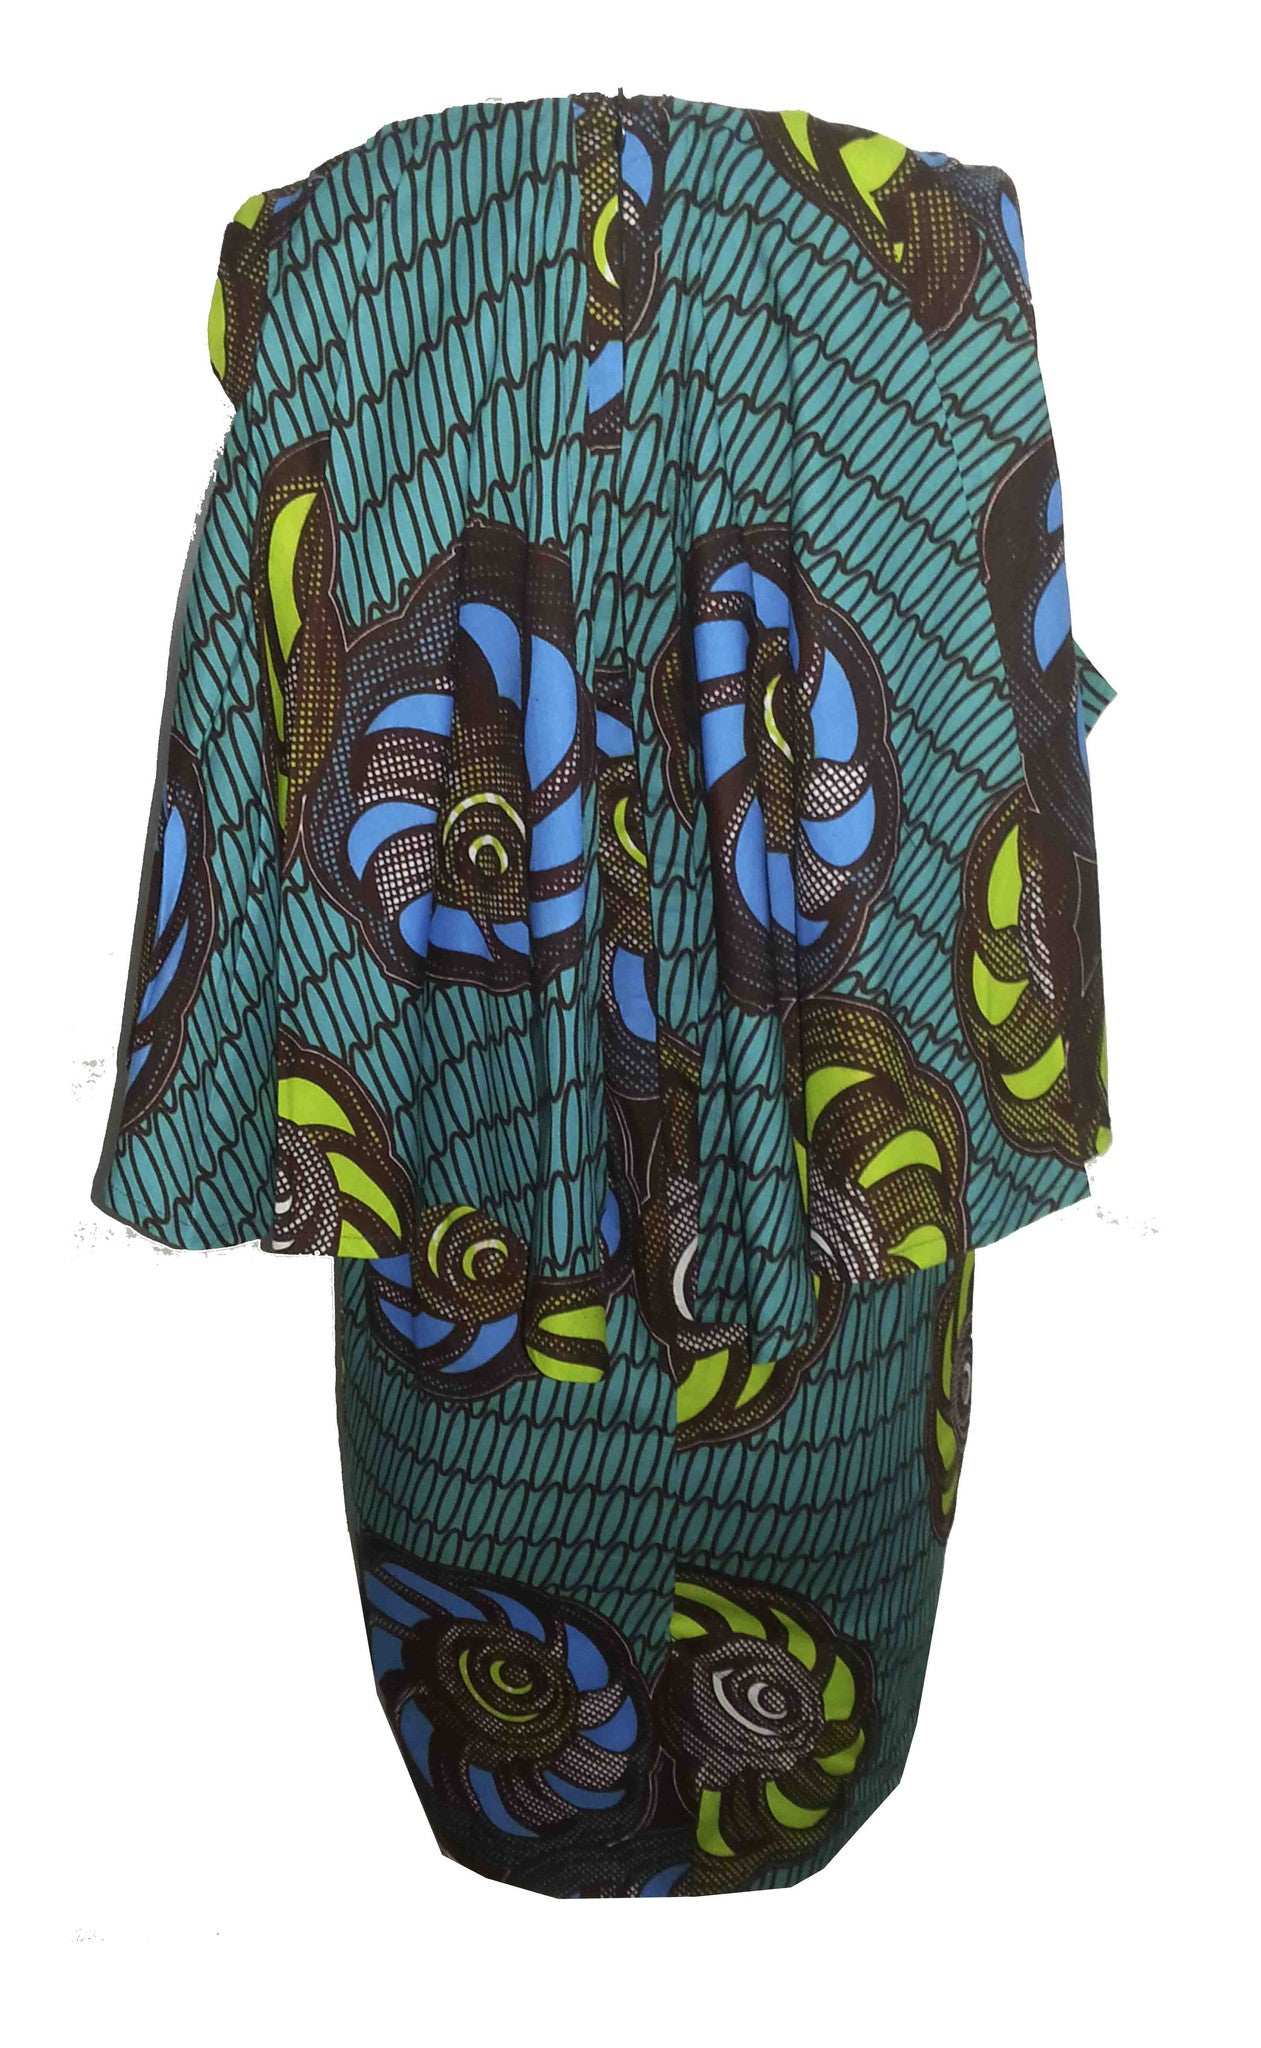 African Print Cape Dress - OHEMA OHENE AFRICAN INSPIRED FASHION  - 2